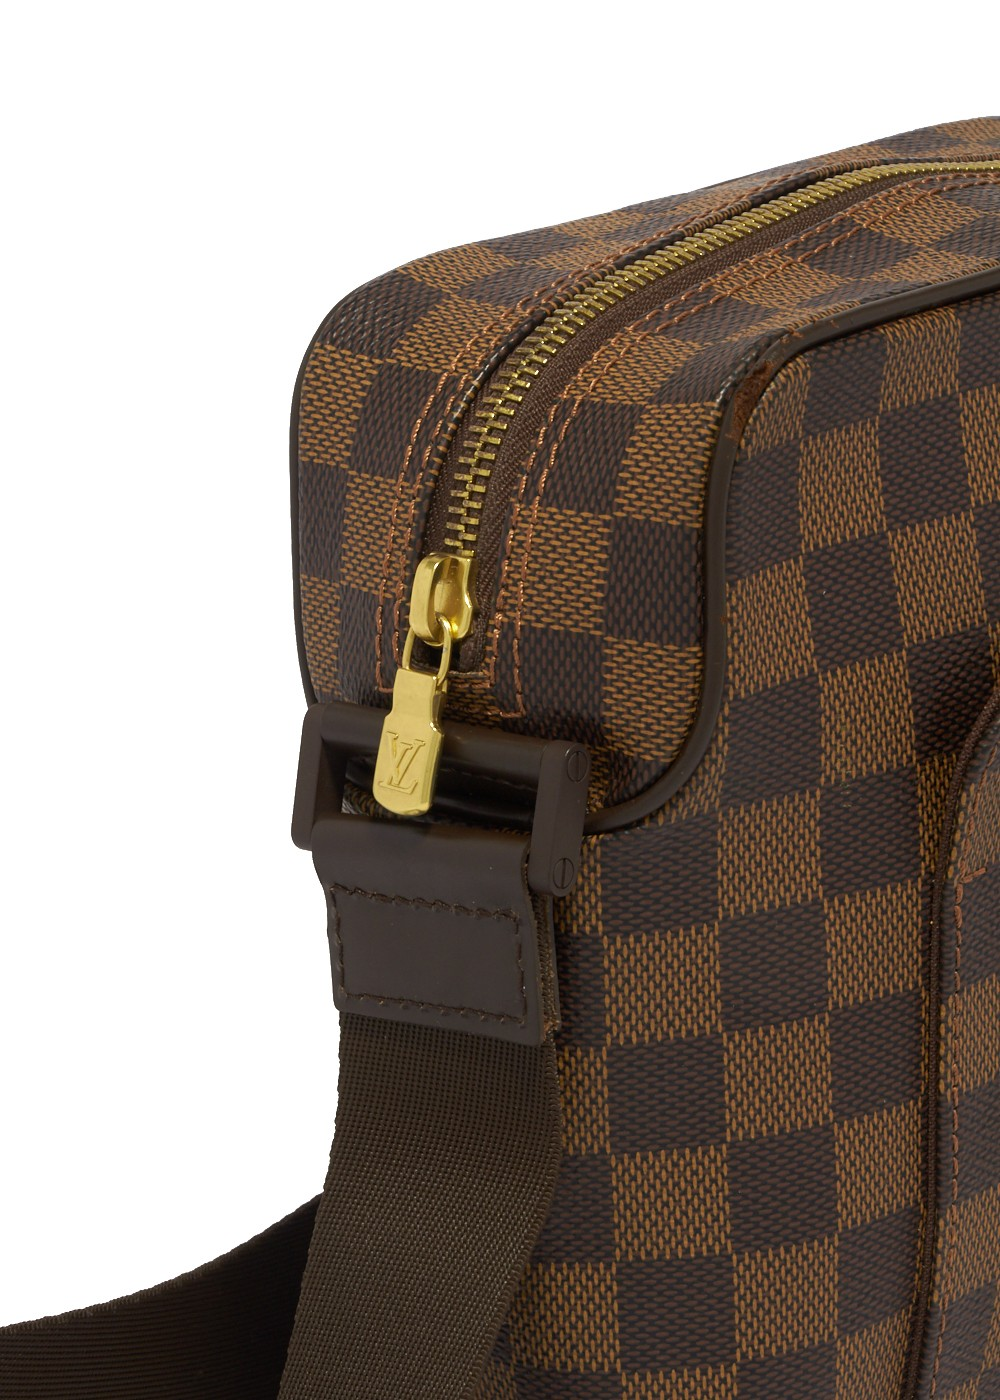 Louis Vuitton オラフ|OTHER|ショルダーバッグ|【Price Down!!】TIMELESS TOKYO - Vintage Select -